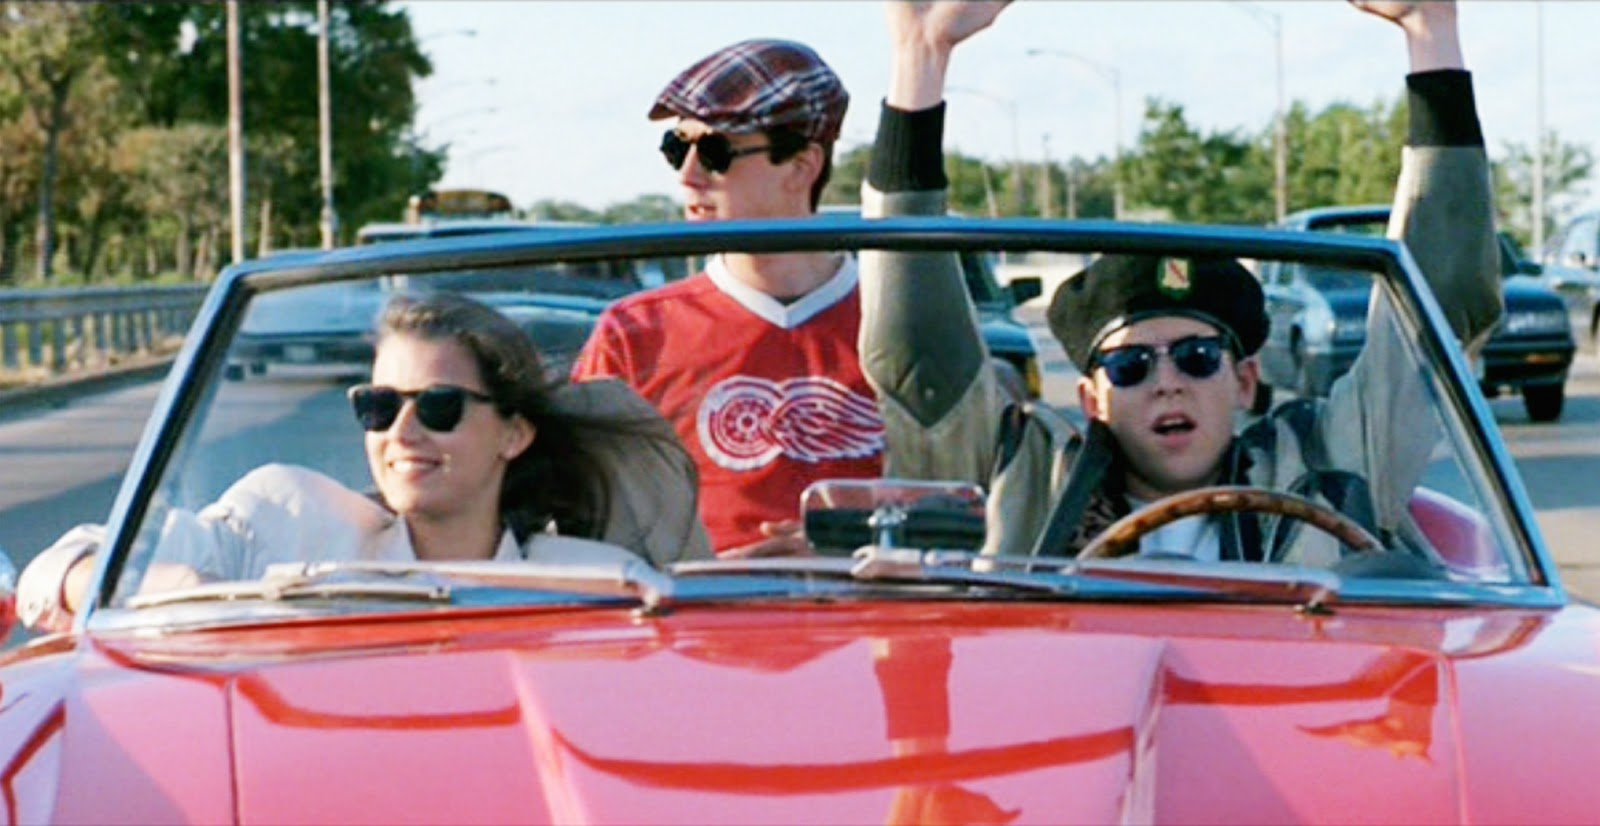 ferris buellers day off Teenaged ferris bueller wants a day off from school and he's developed an incredibly sophisticated plan to pull it off he creatively avoids his school's dean of students edward rooney, his resentful sister jeannie, and his parents.